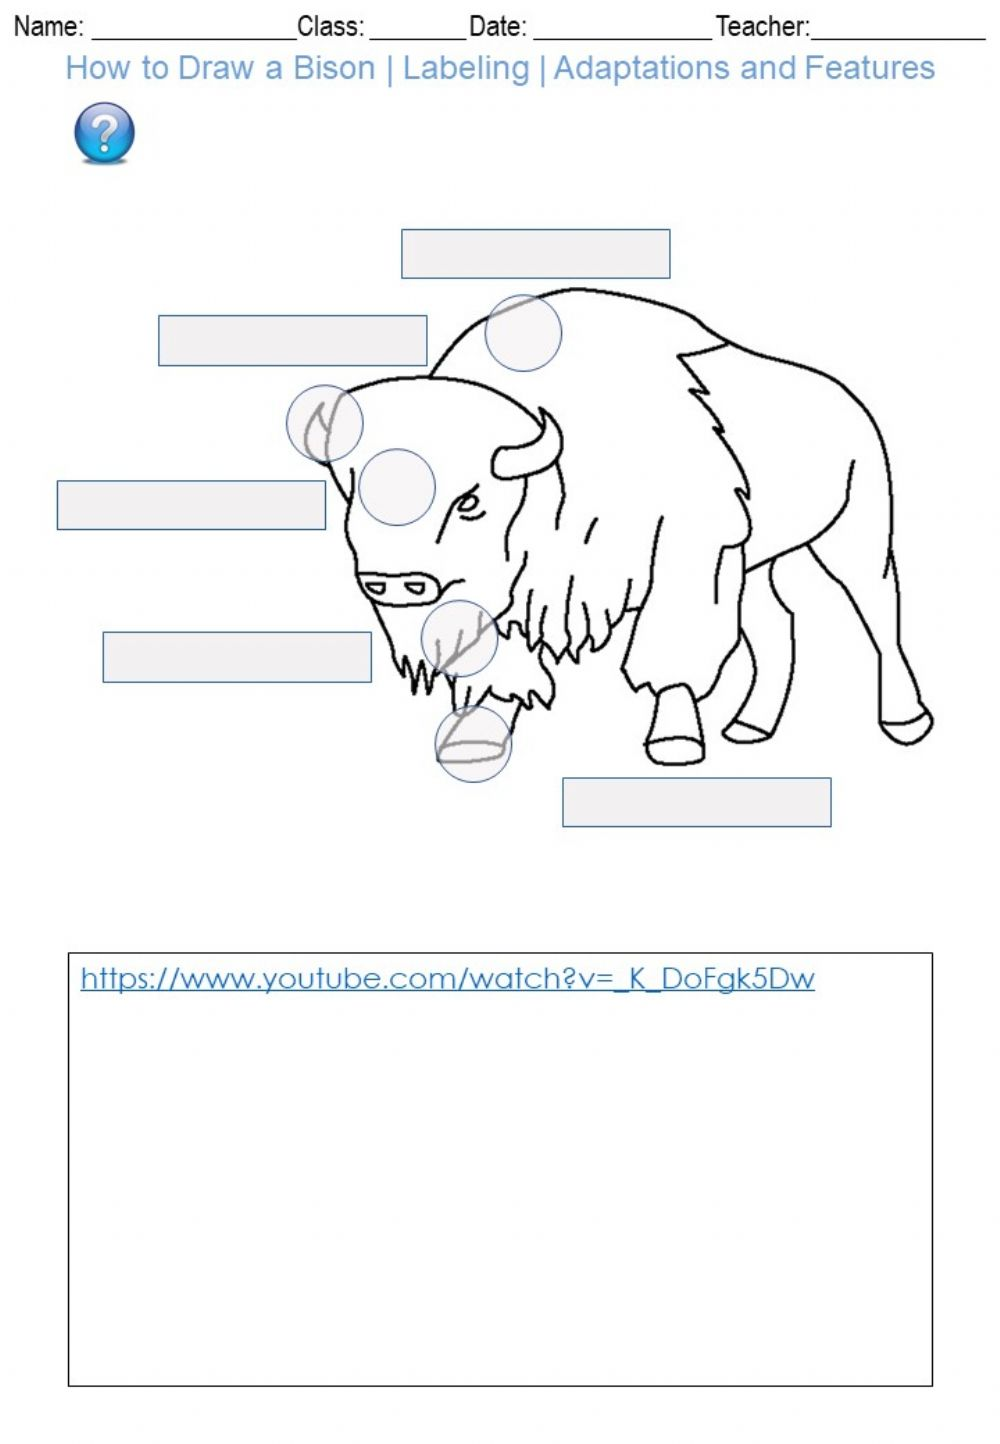 hight resolution of How to Draw a Bison - Labeling - Adaptations and Features worksheet